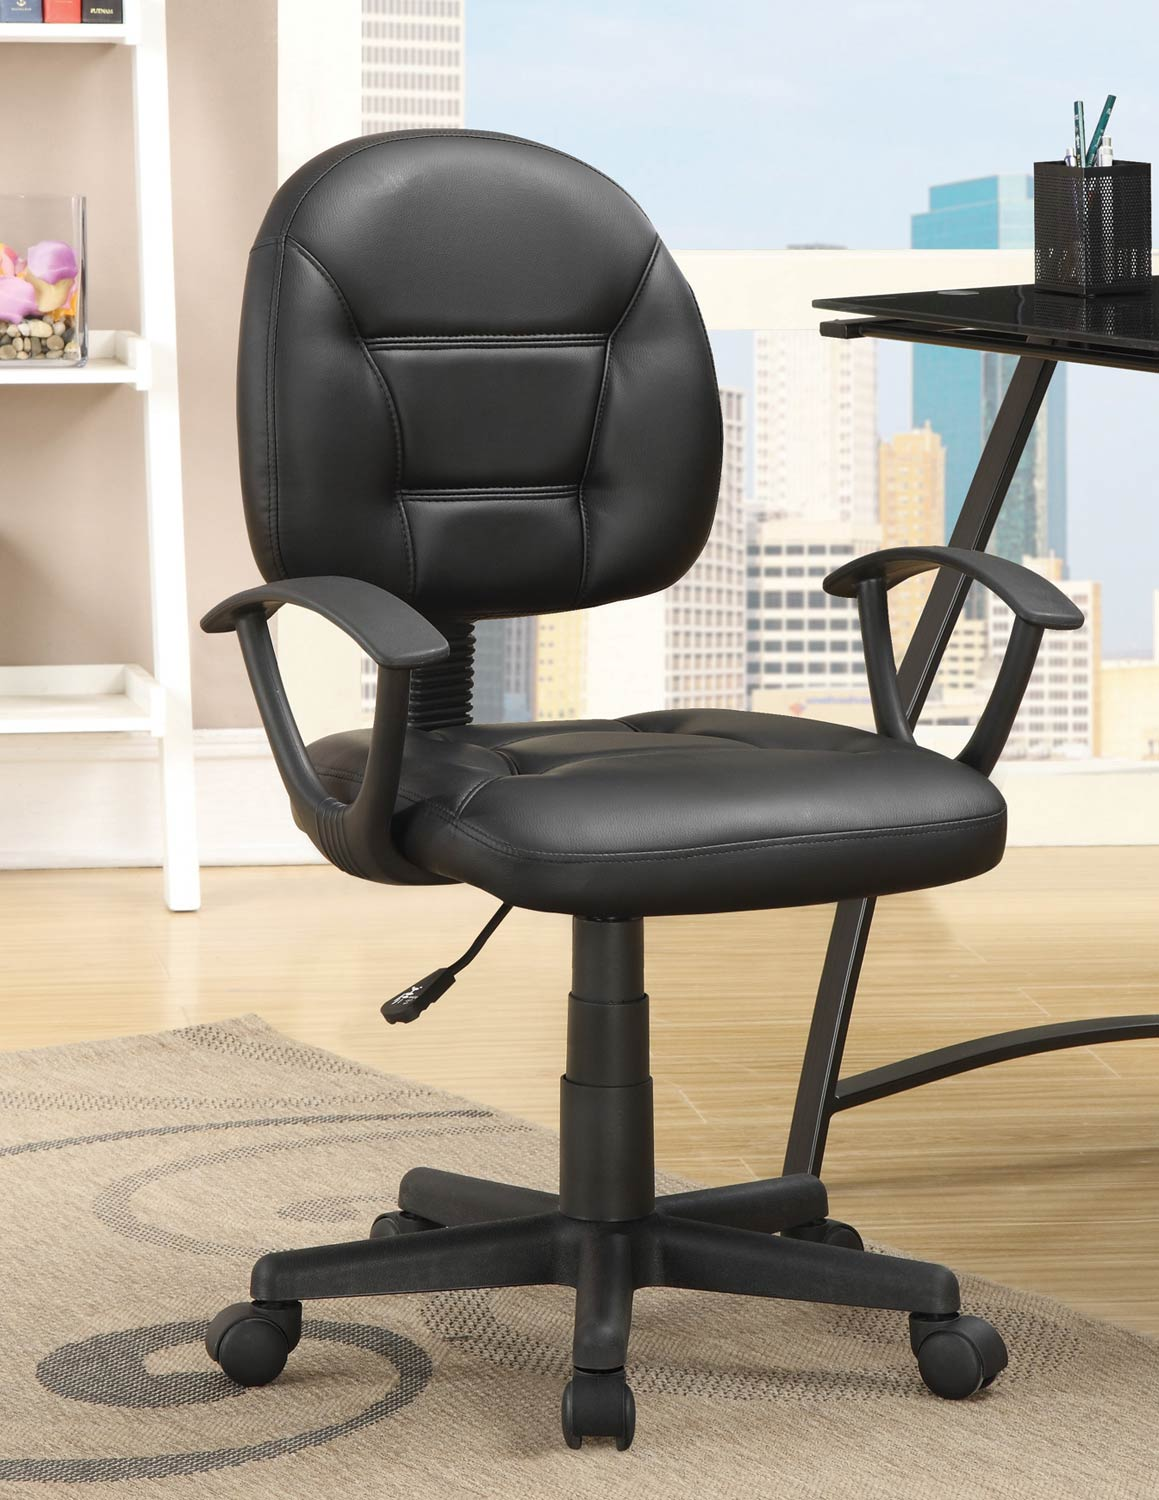 Coaster 800178 Office Chair - Black